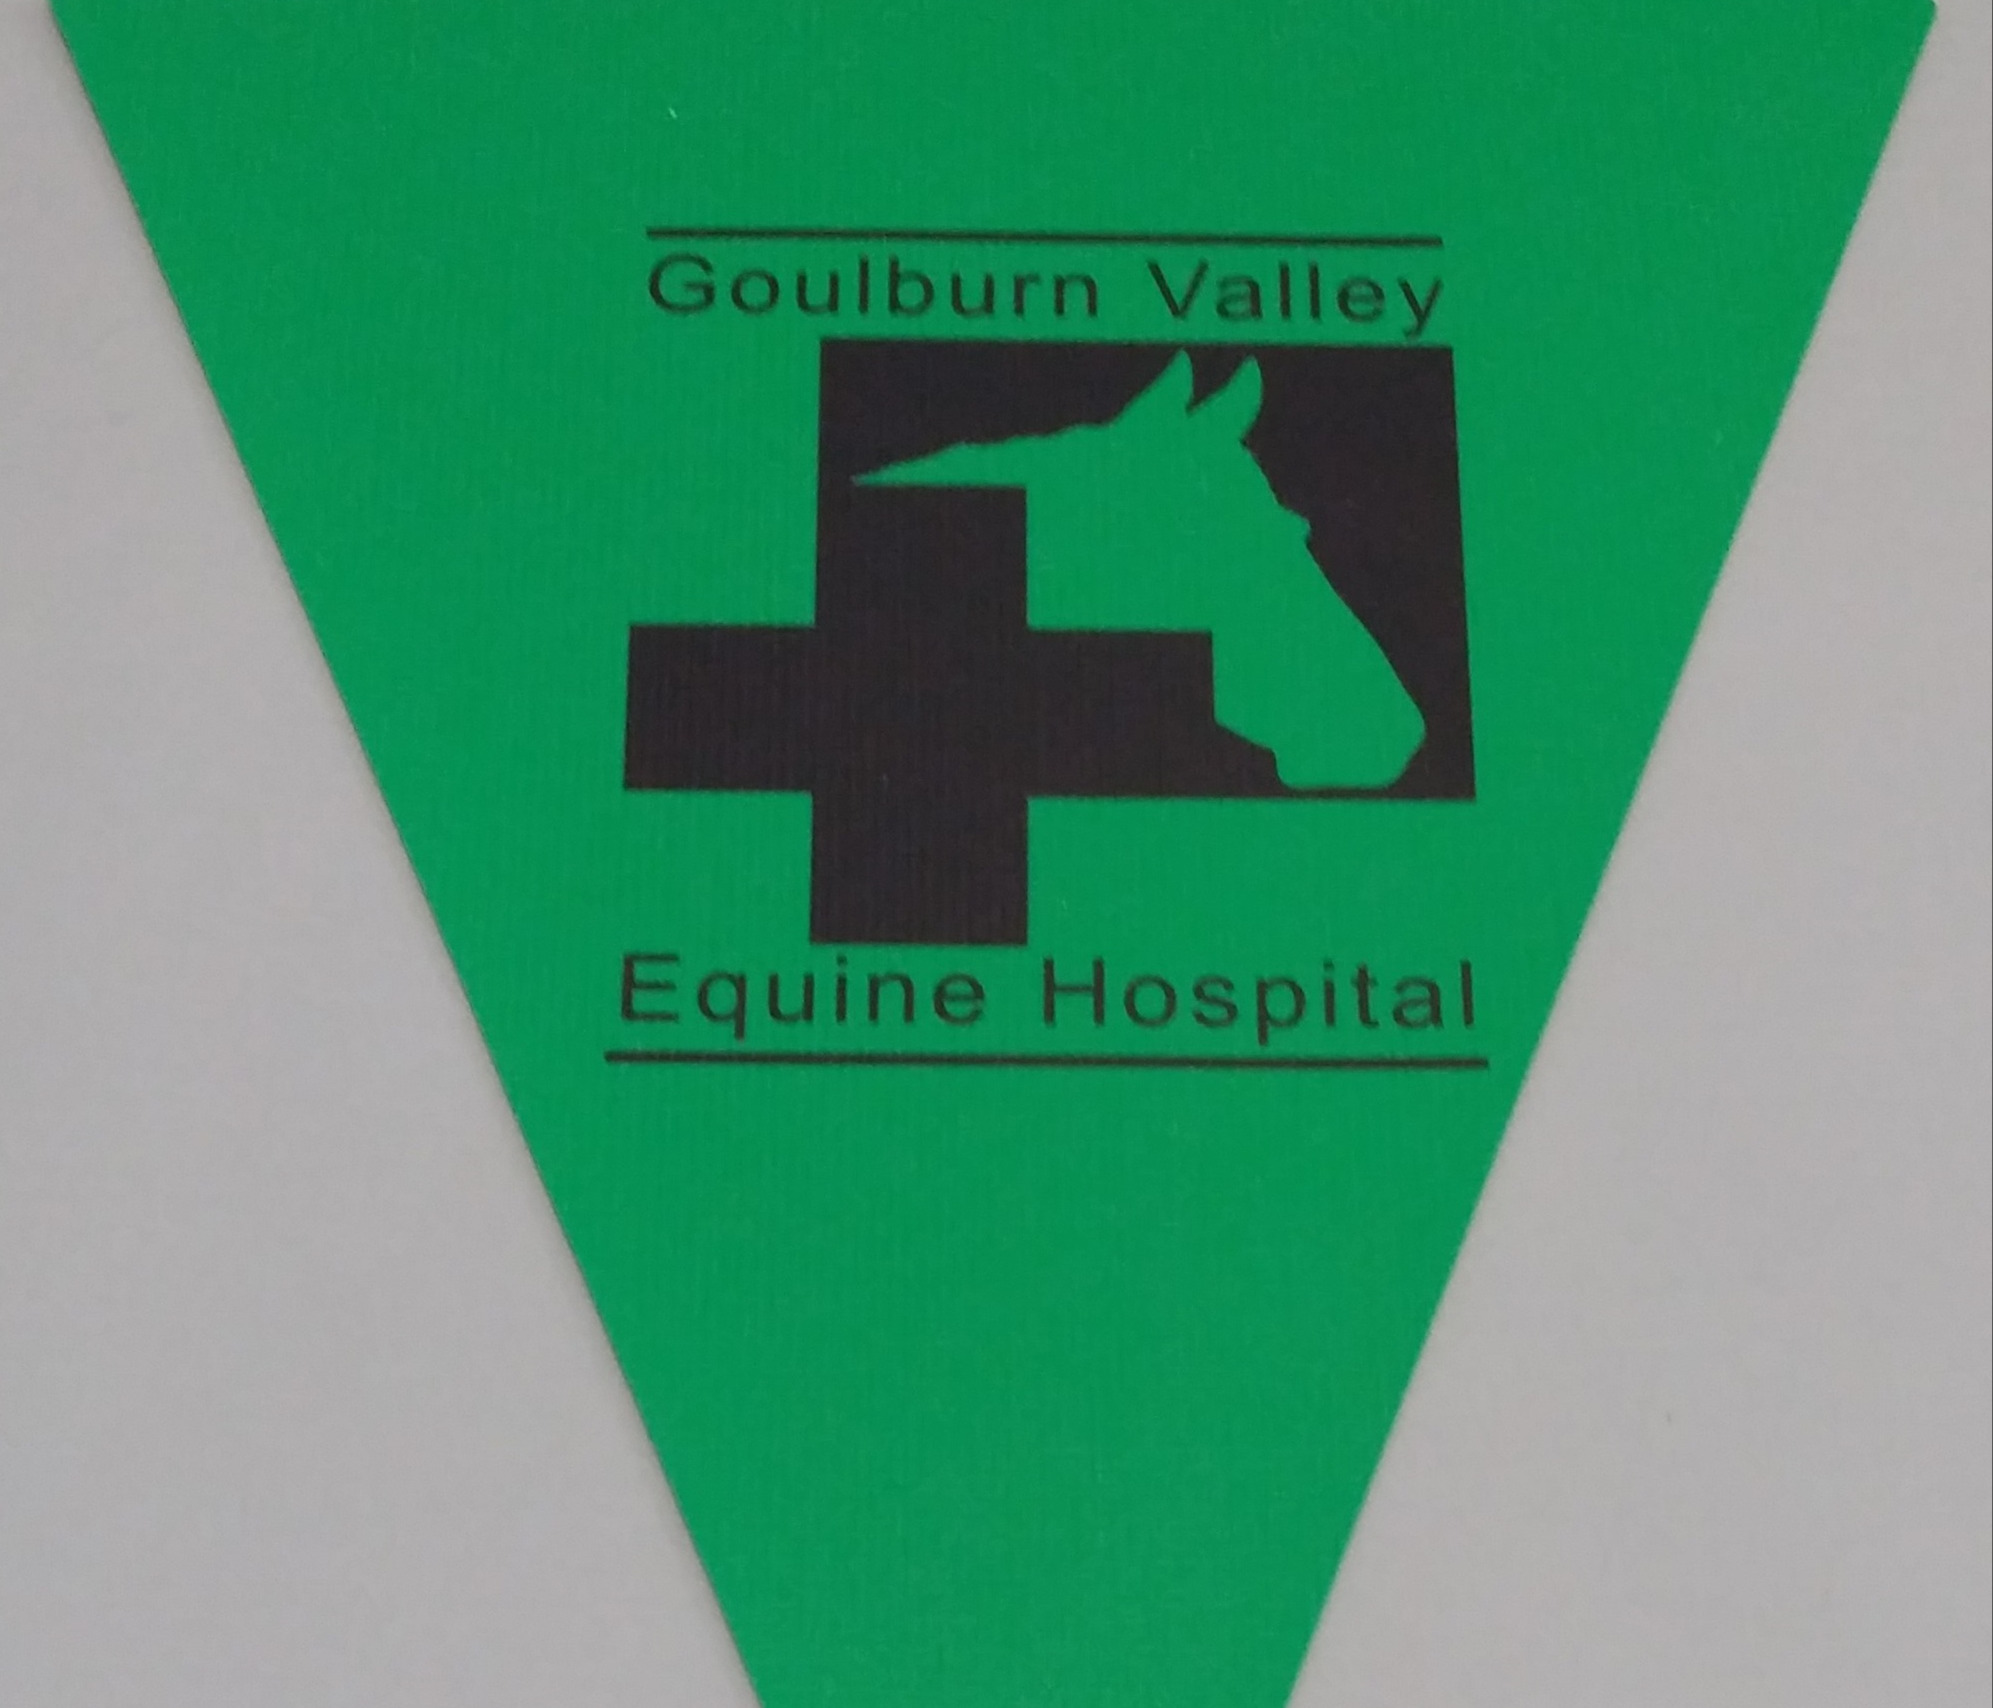 Goulburn Valley Equine Hospital (green)